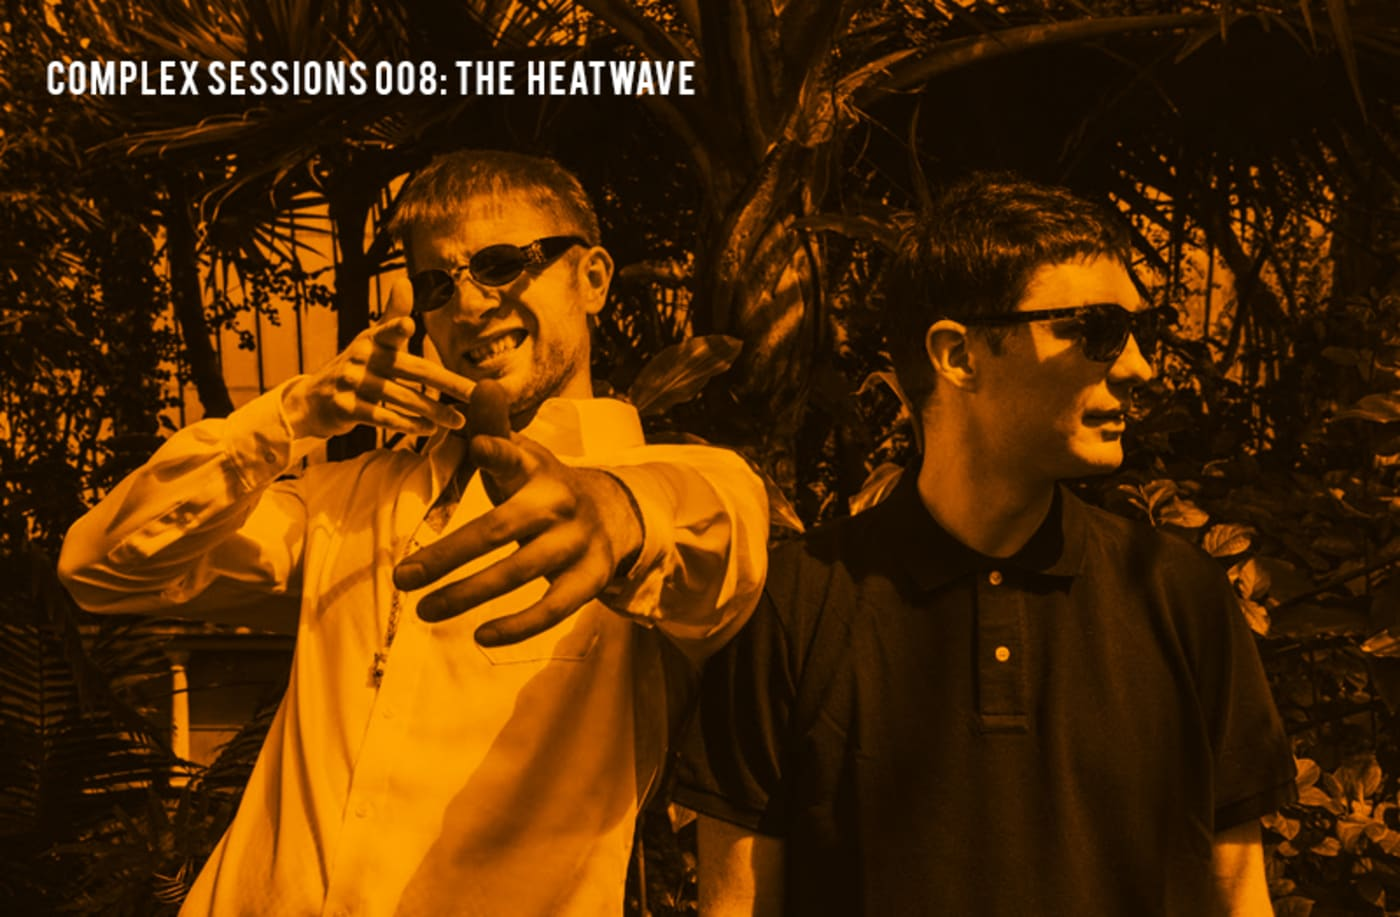 Complex Sessions 008: The Heatwave